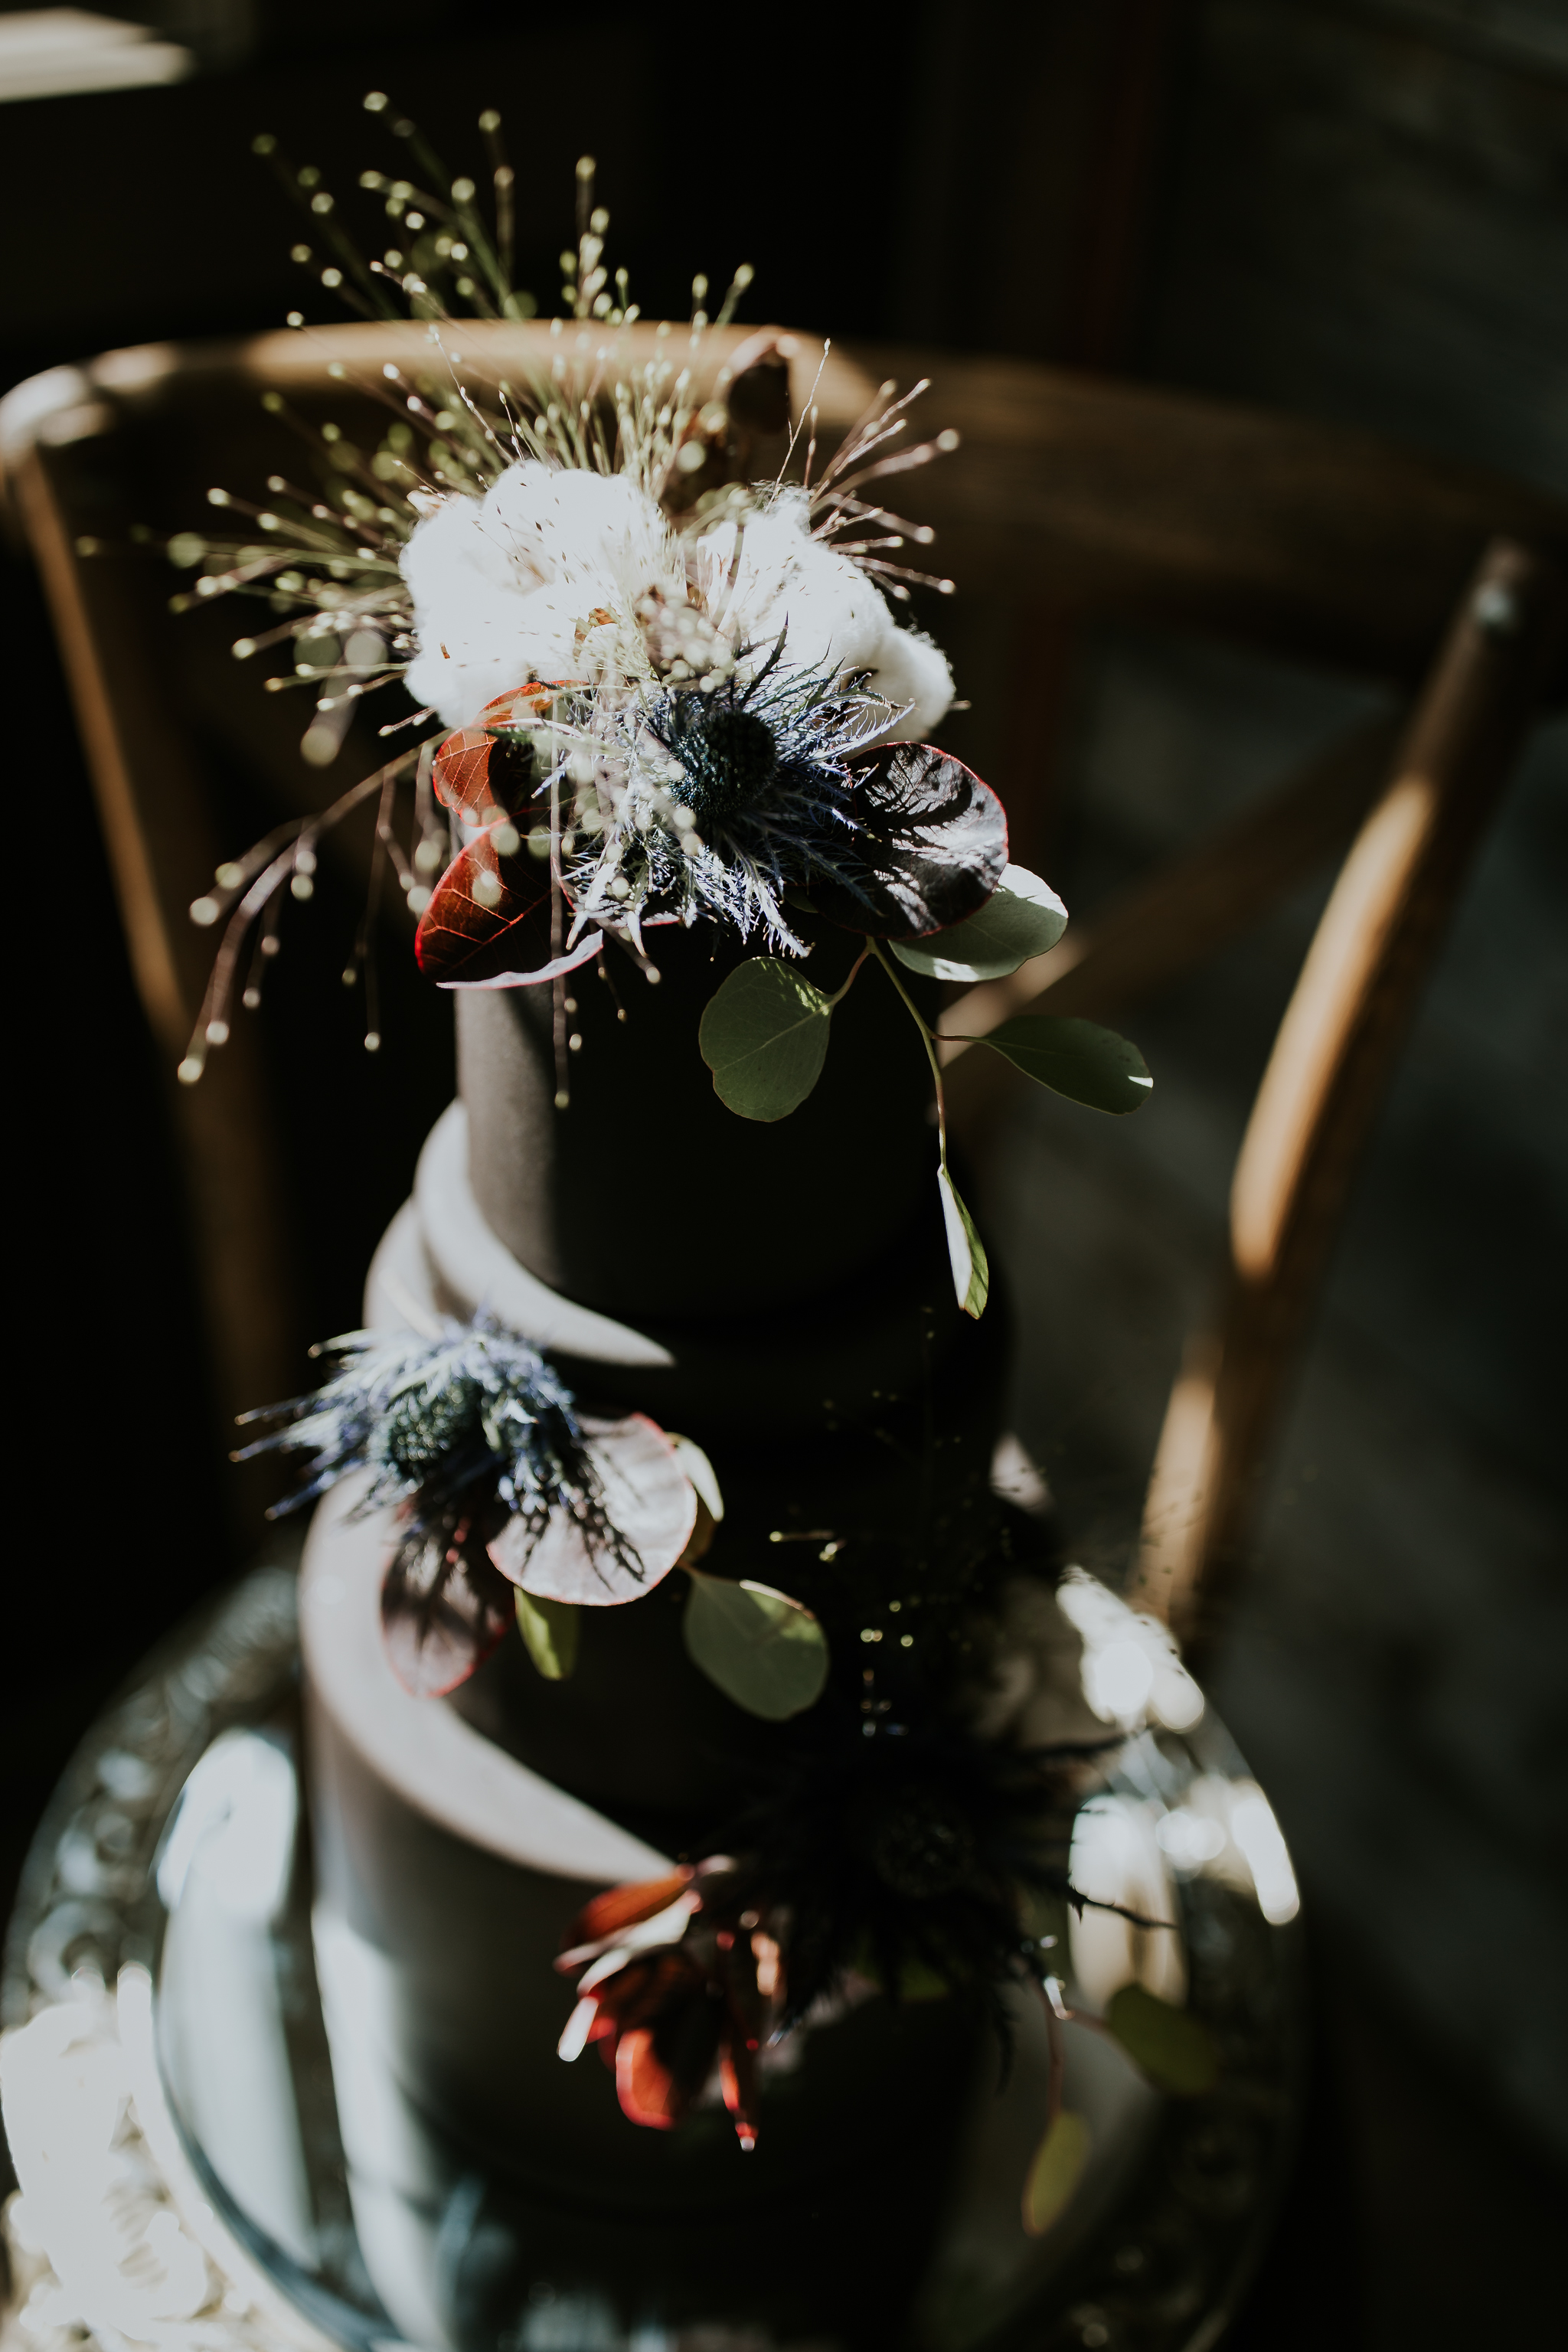 Black edgy wedding cake with feather and flower accents